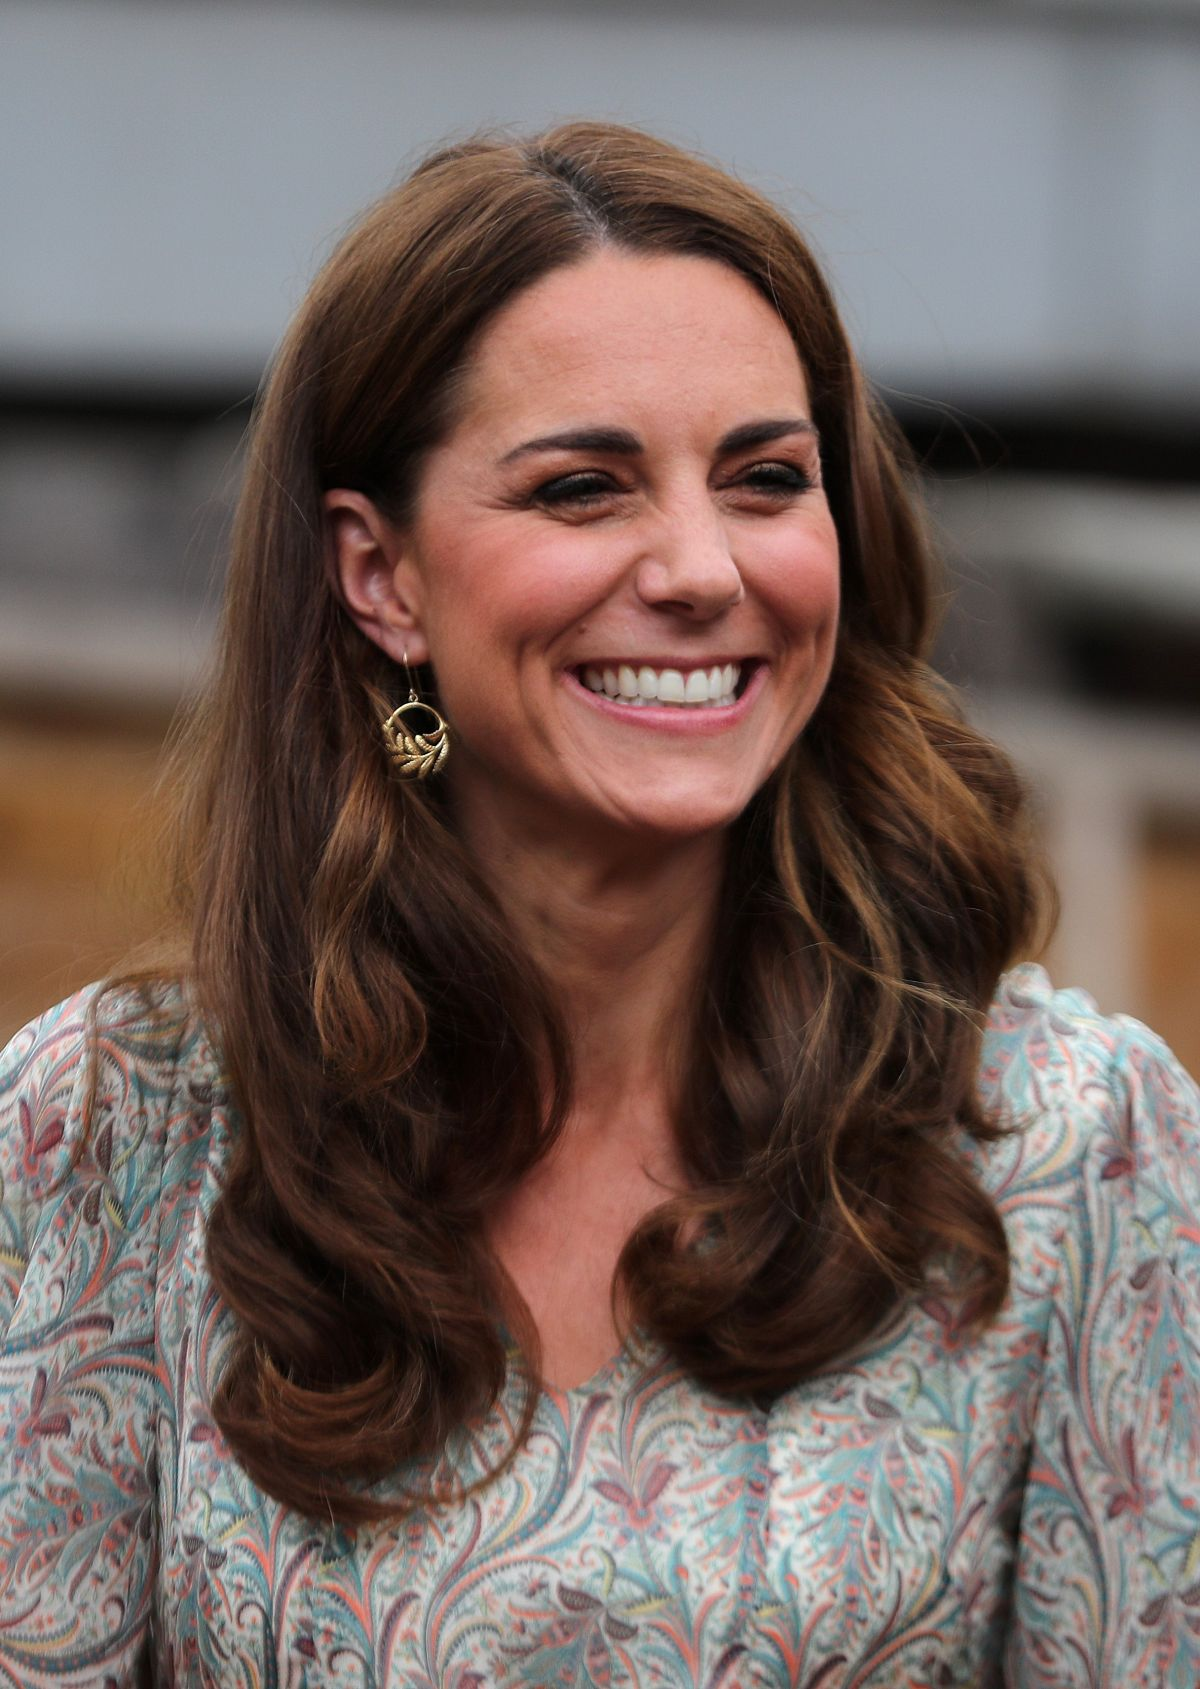 Kate Middleton At Photography Workshop For Action For